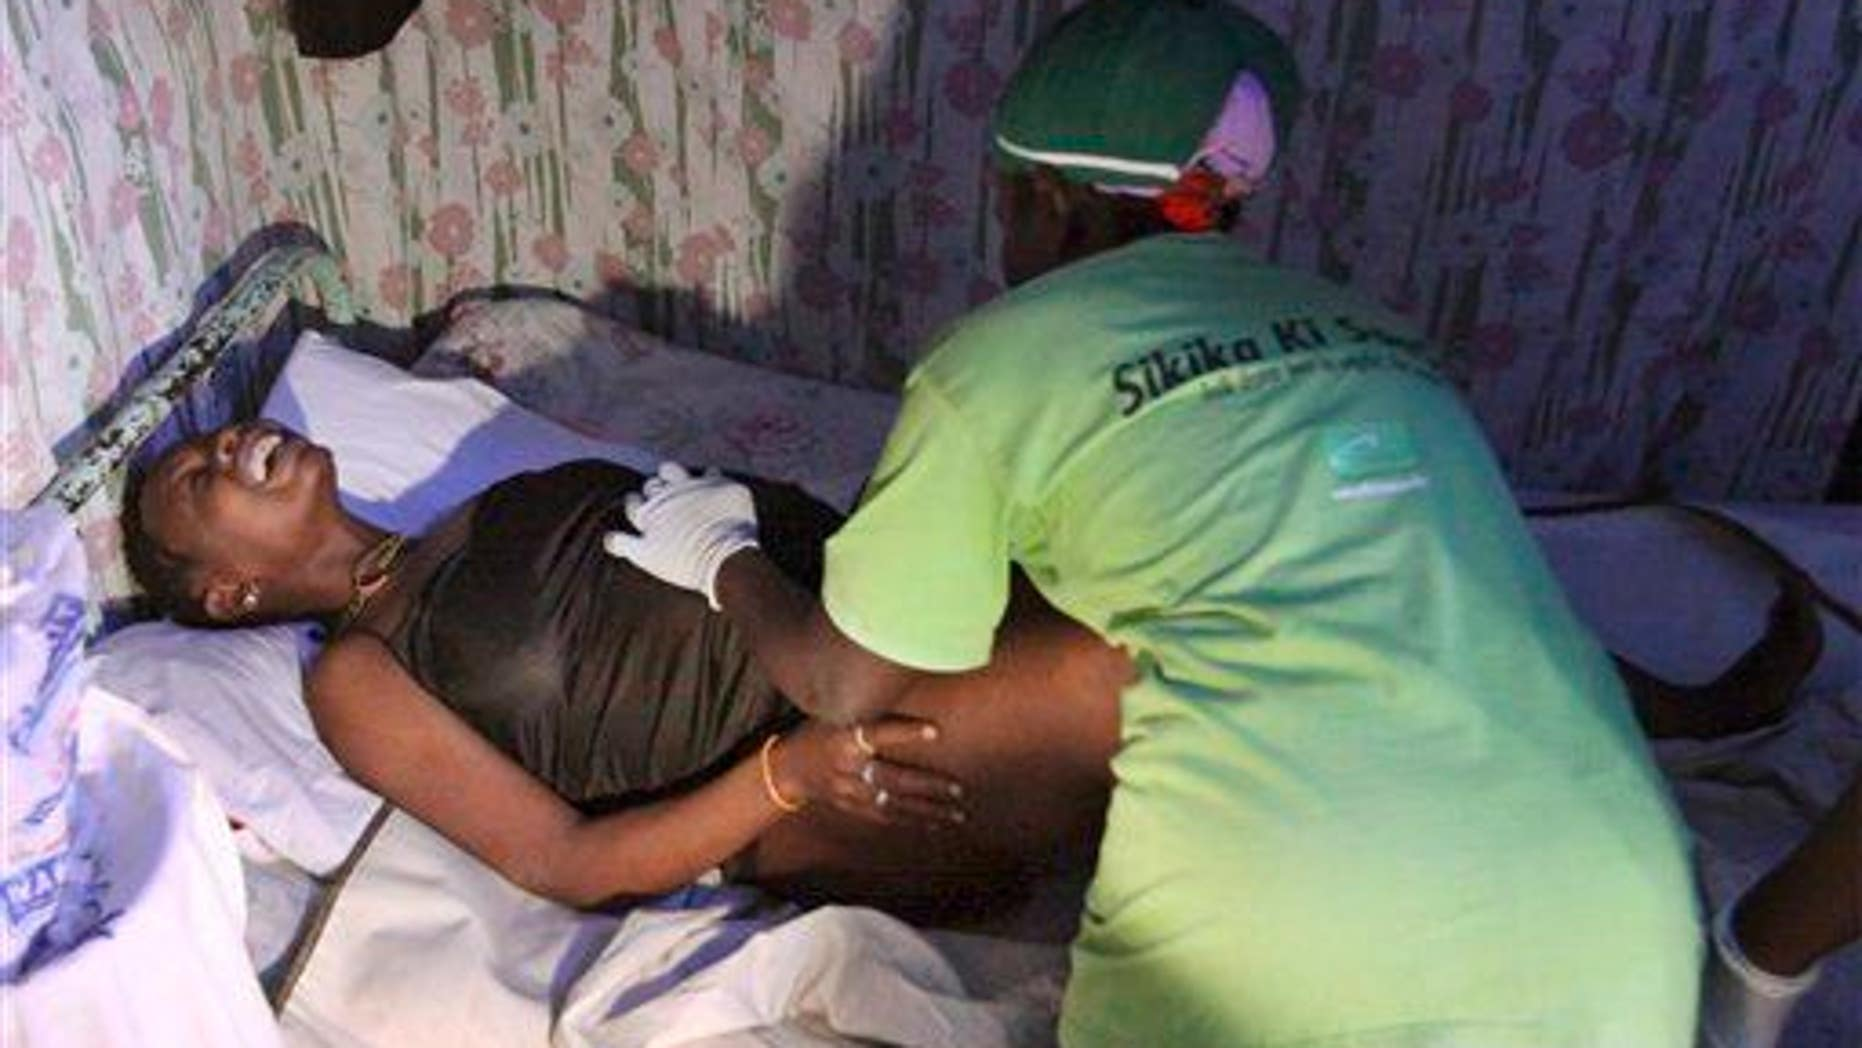 In this July 25, 2010, photo, a traditional birth attendant assists a woman as she goes through labor in Nairobi, Kenya.